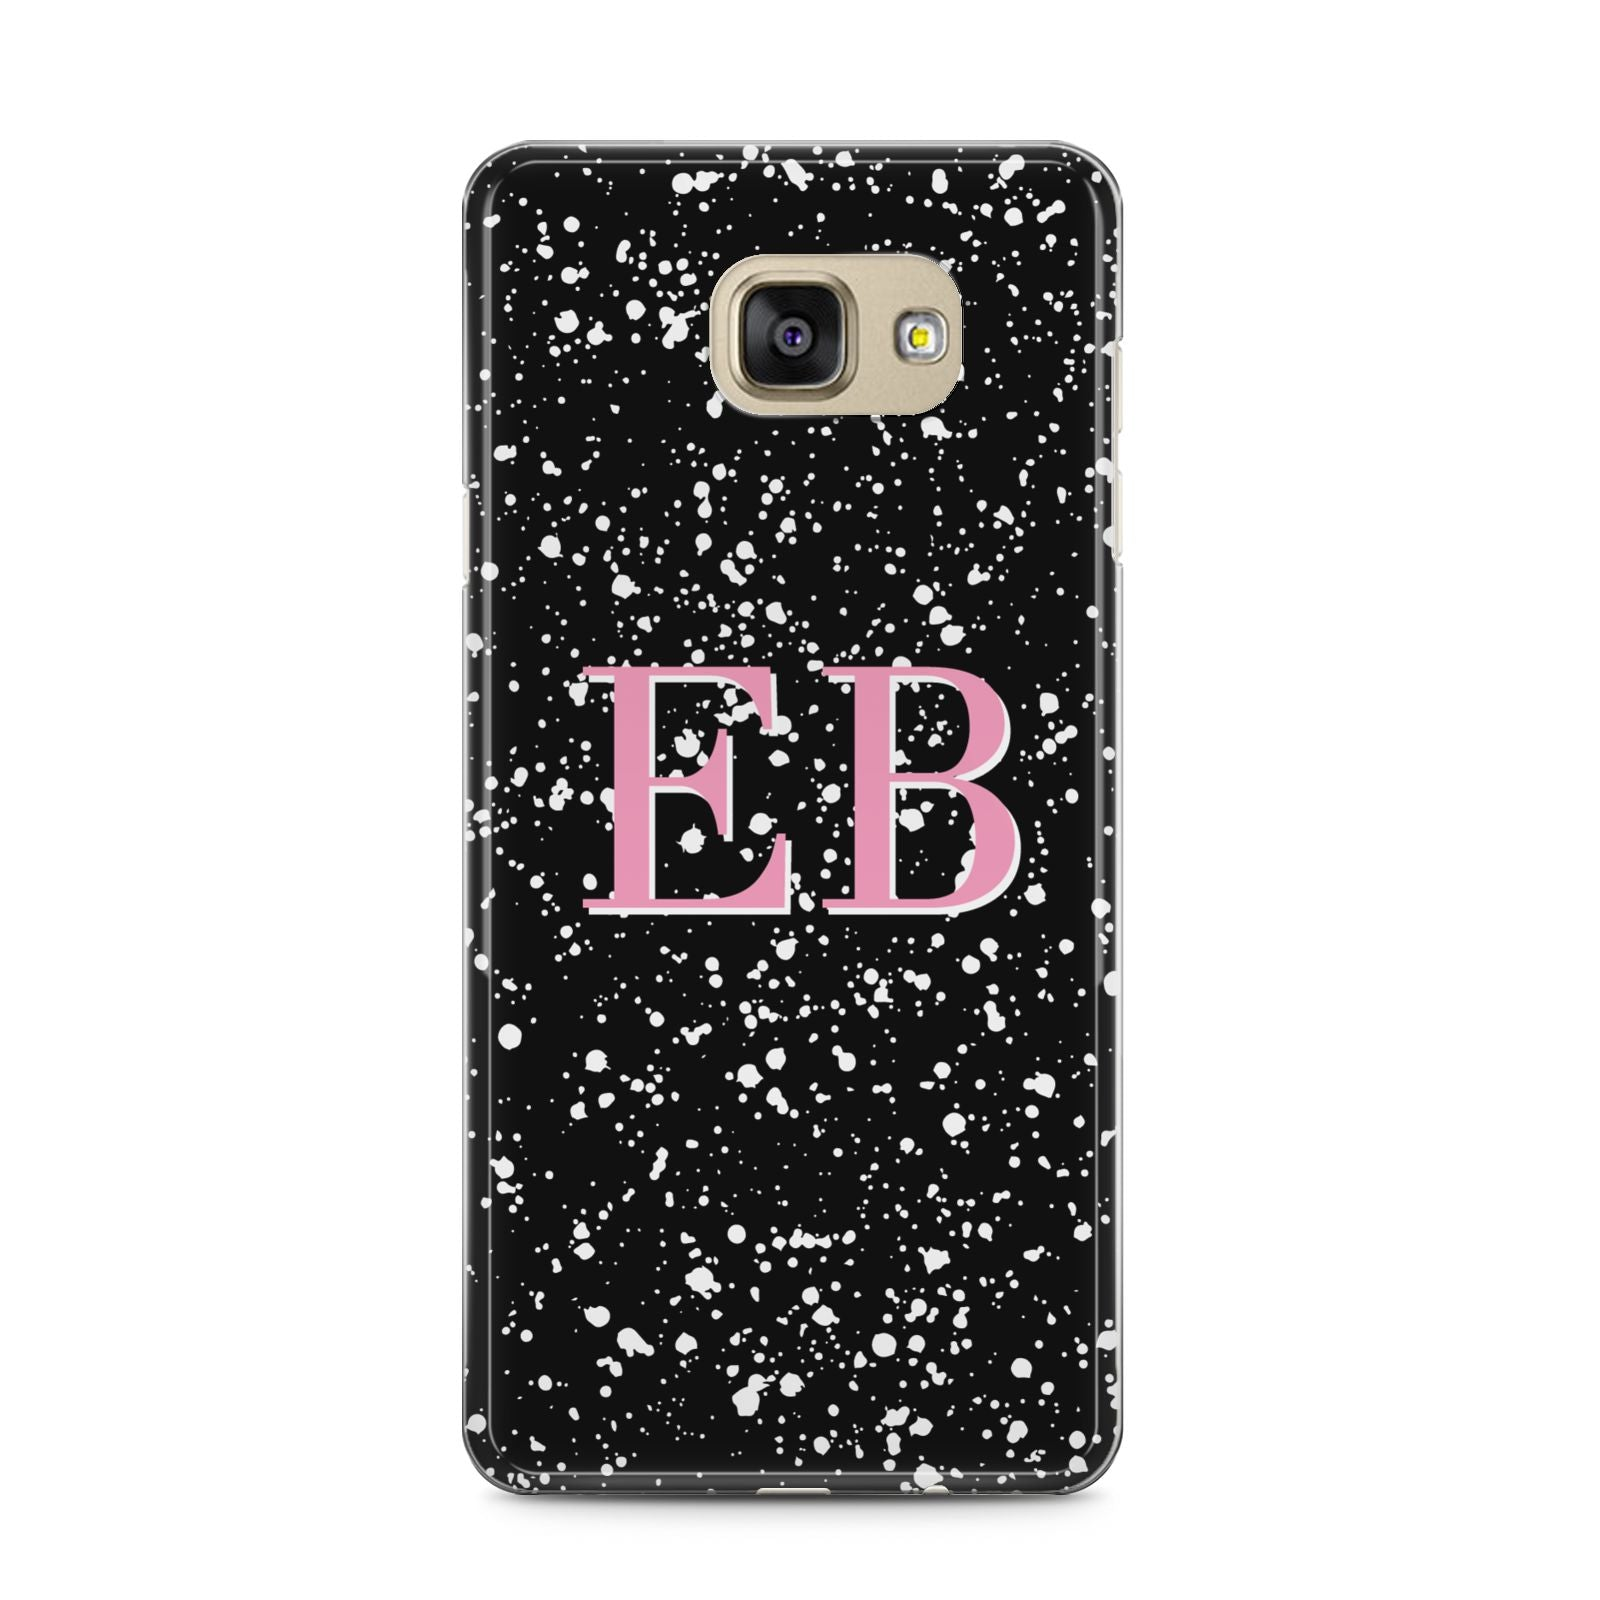 Personalised Black Ink Splat Initials Samsung Galaxy A5 2016 Case on gold phone